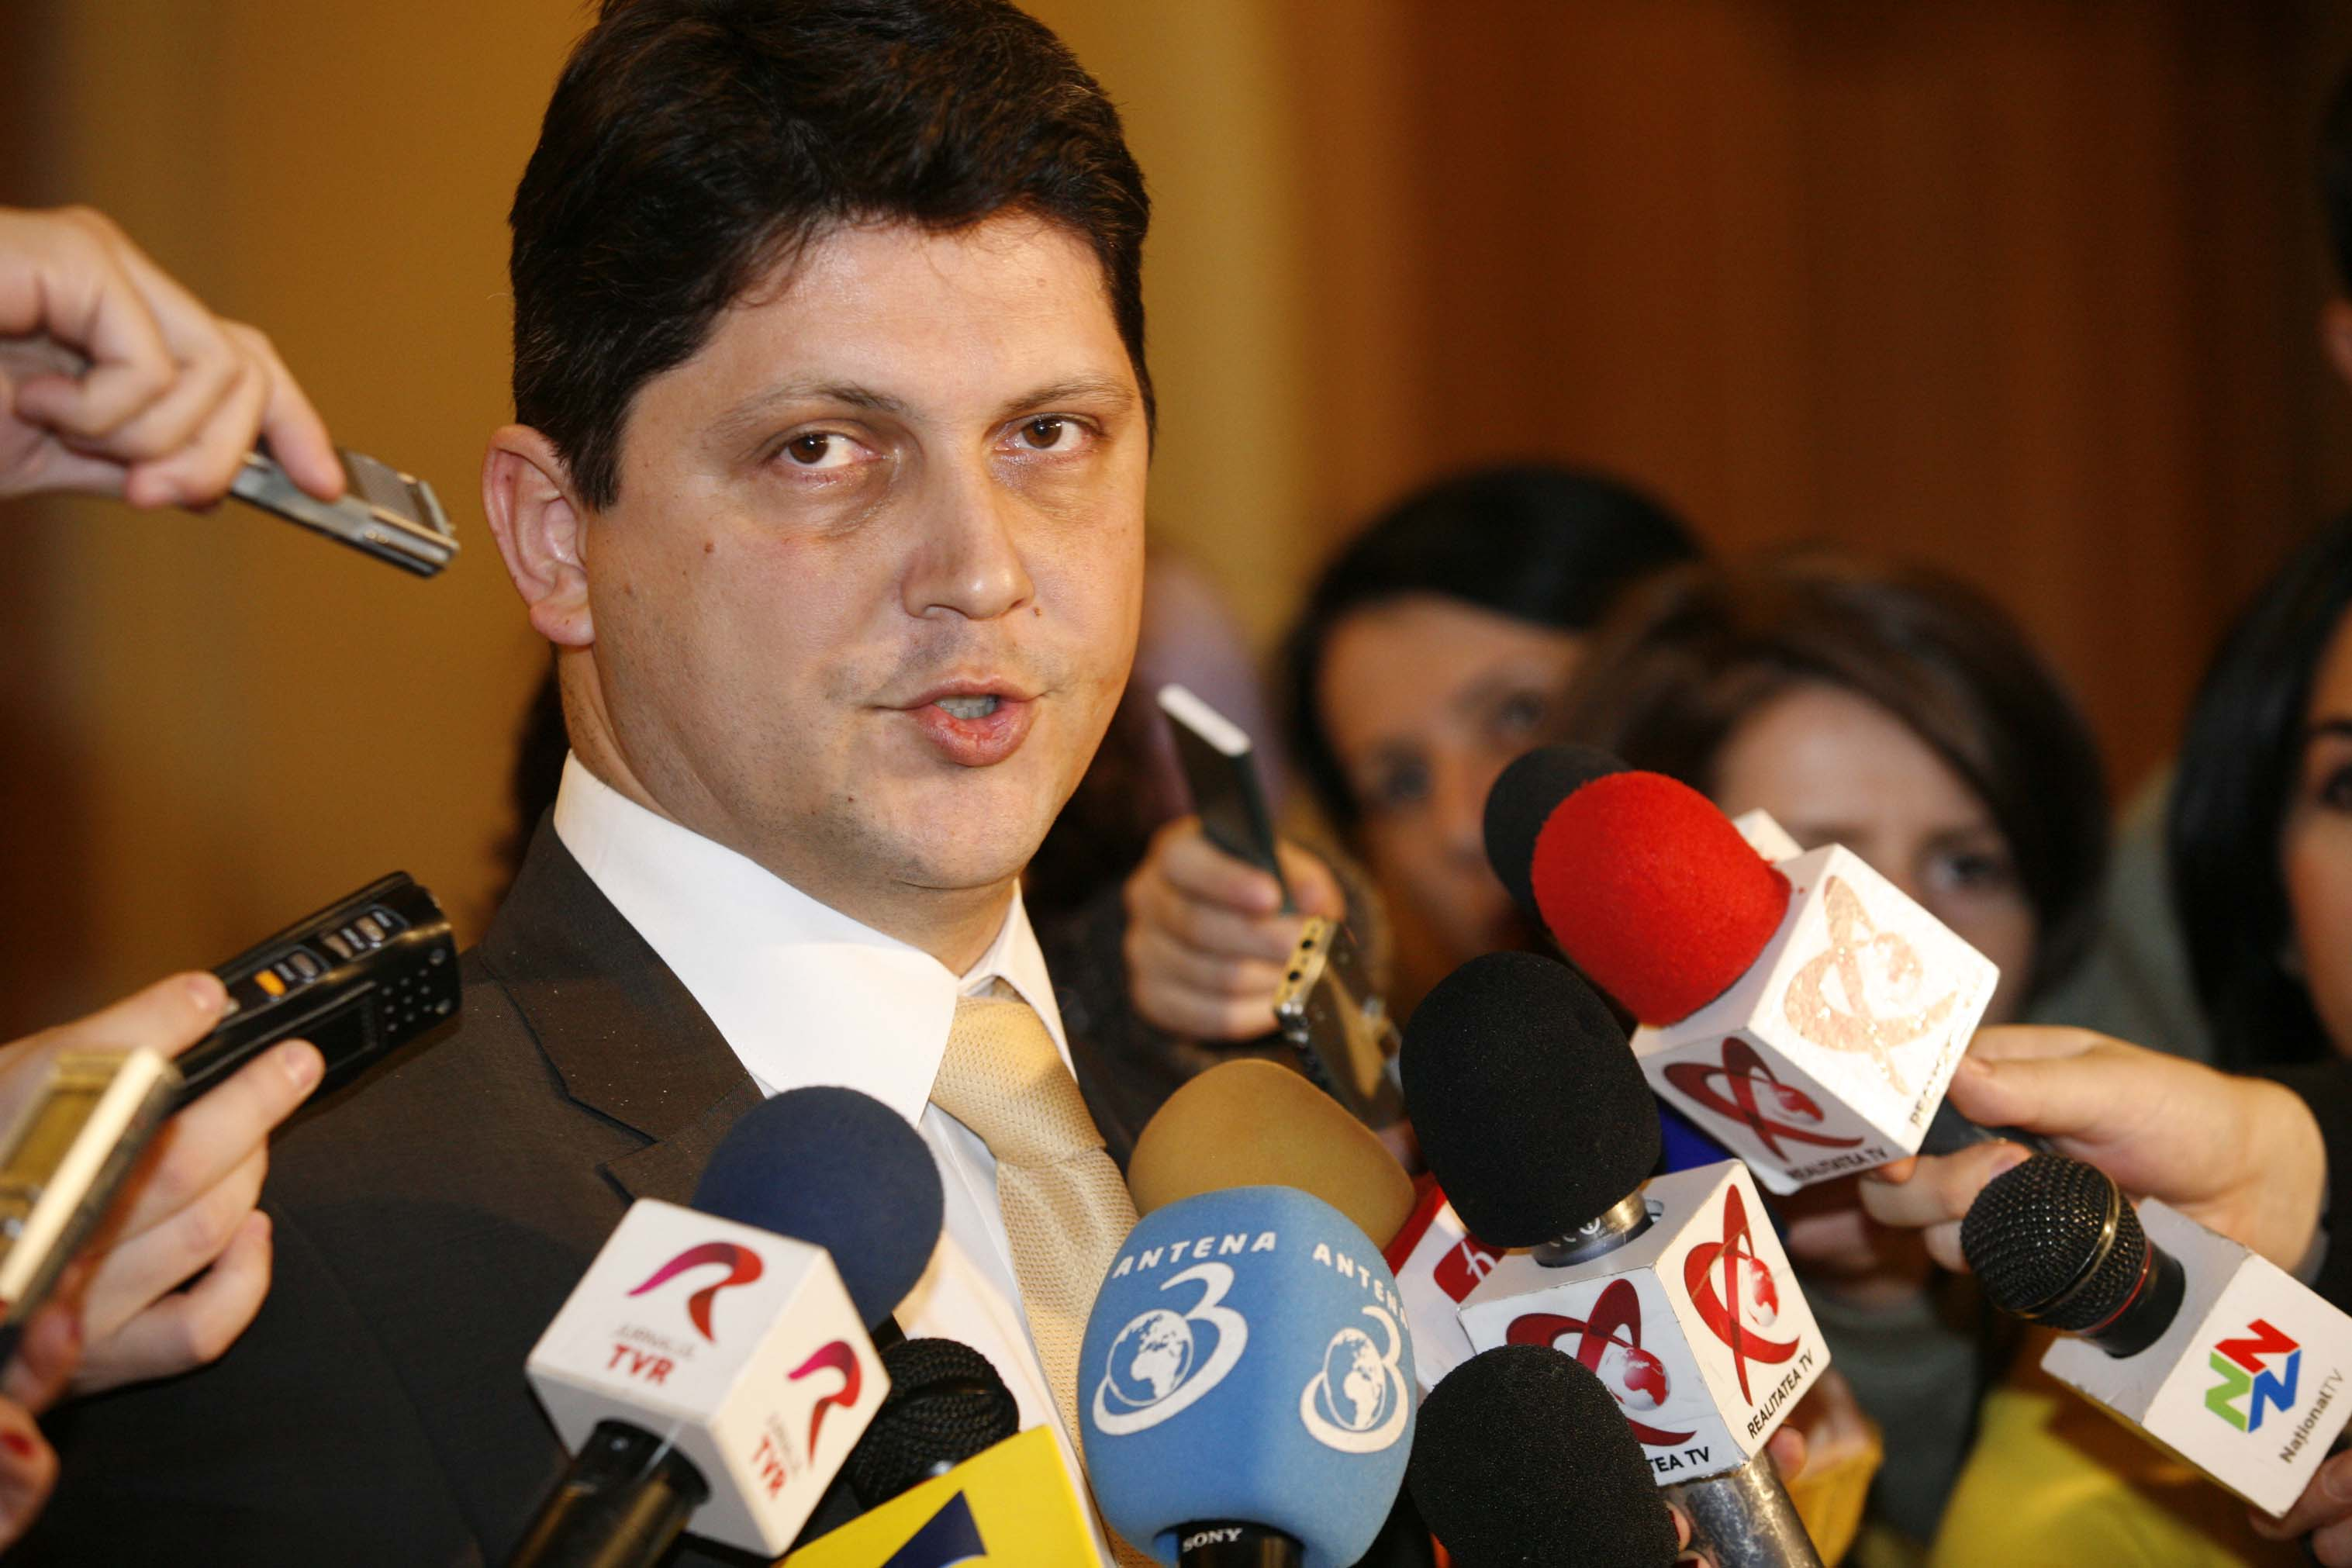 Romania says it is not envisaged by EU rule of law protection mechanism